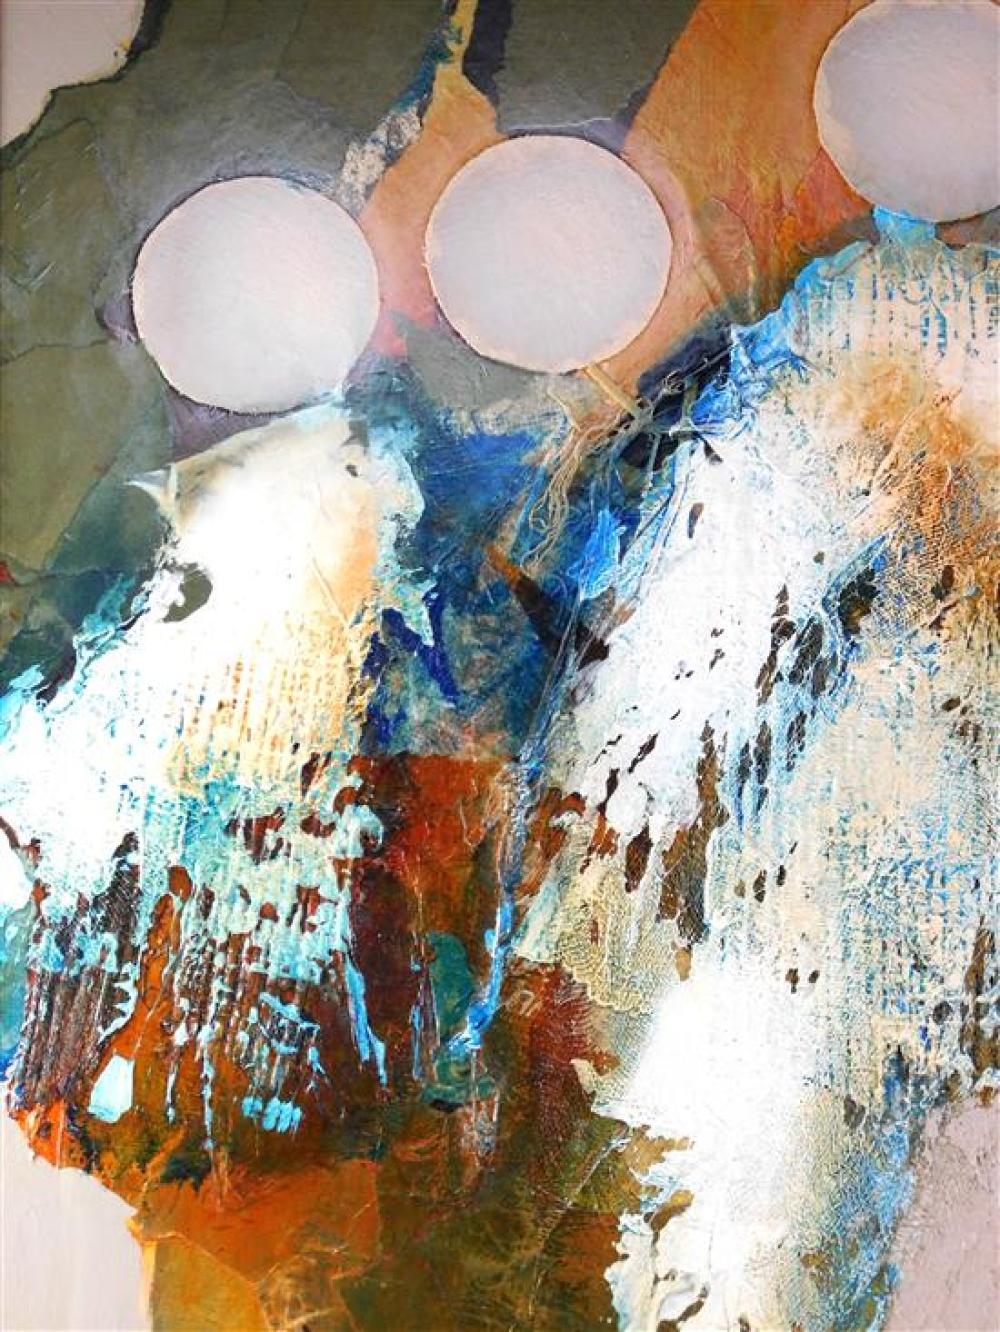 """James L. Grabowski (American, b. 1944), """"Time Sequence Study"""", mixed media on canvas, depicts abstract composition with four white c..."""